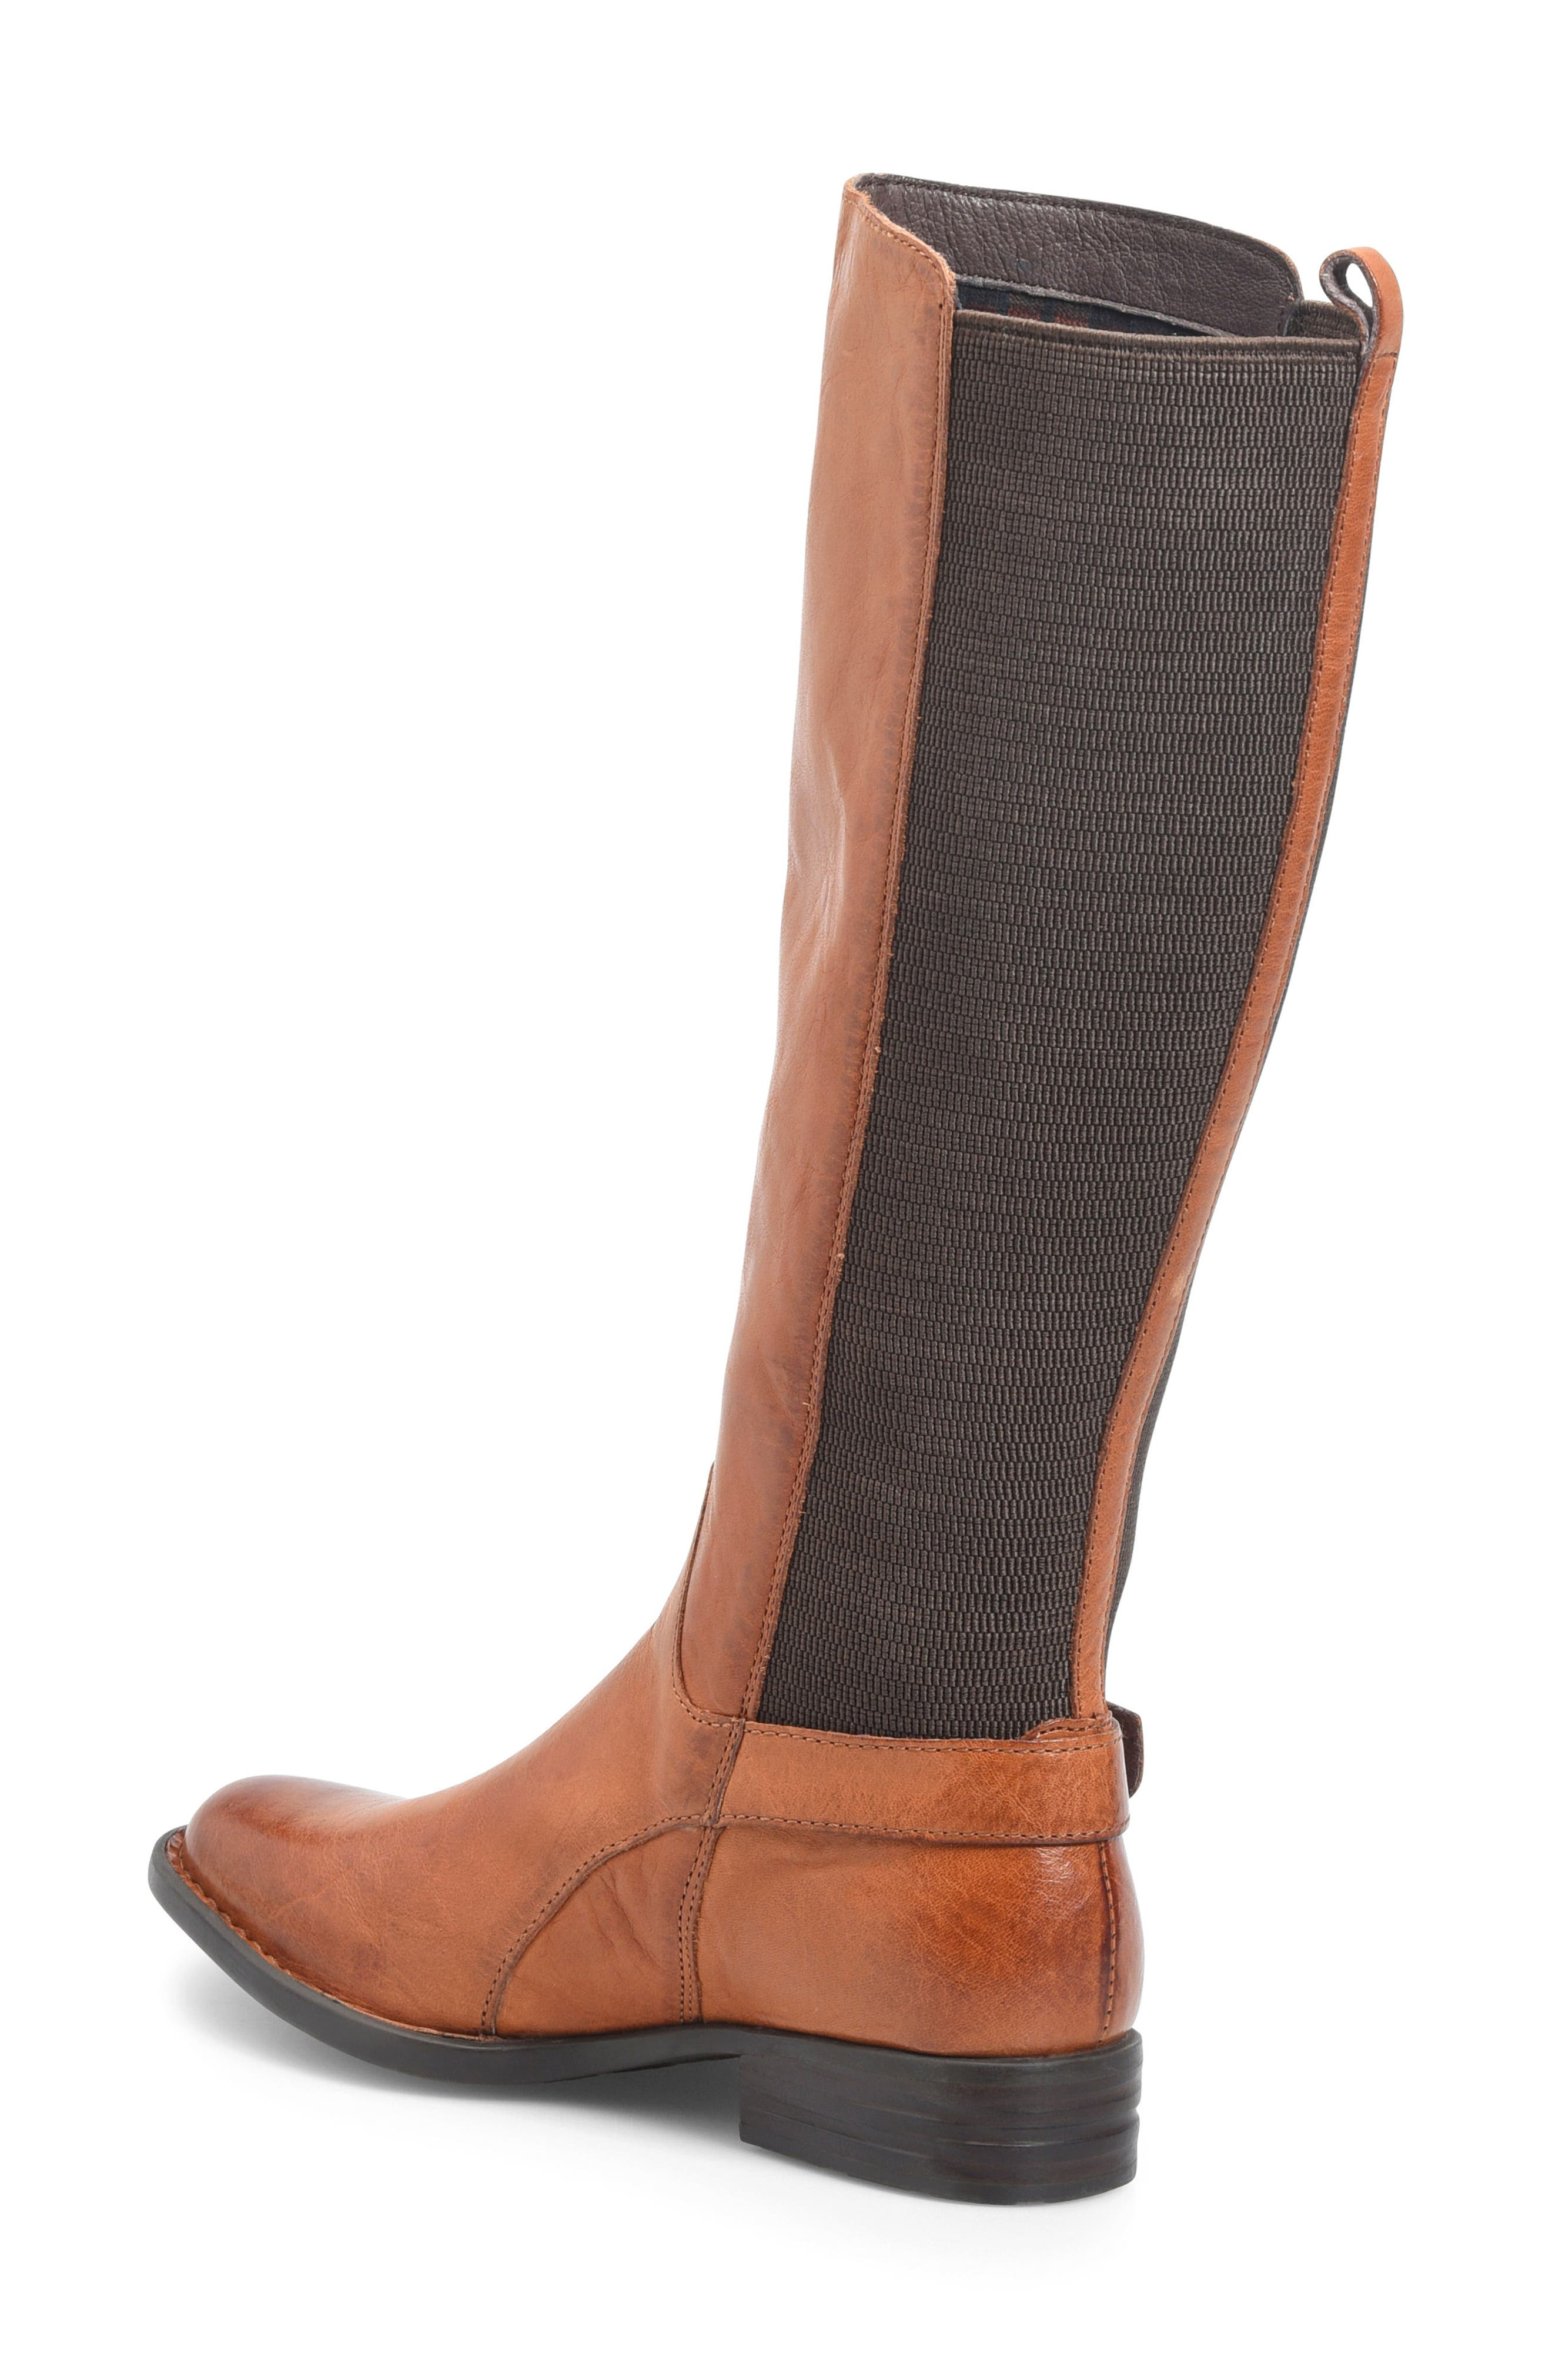 Campbell Knee High Elastic Back Boot,                             Alternate thumbnail 2, color,                             Tan Leather